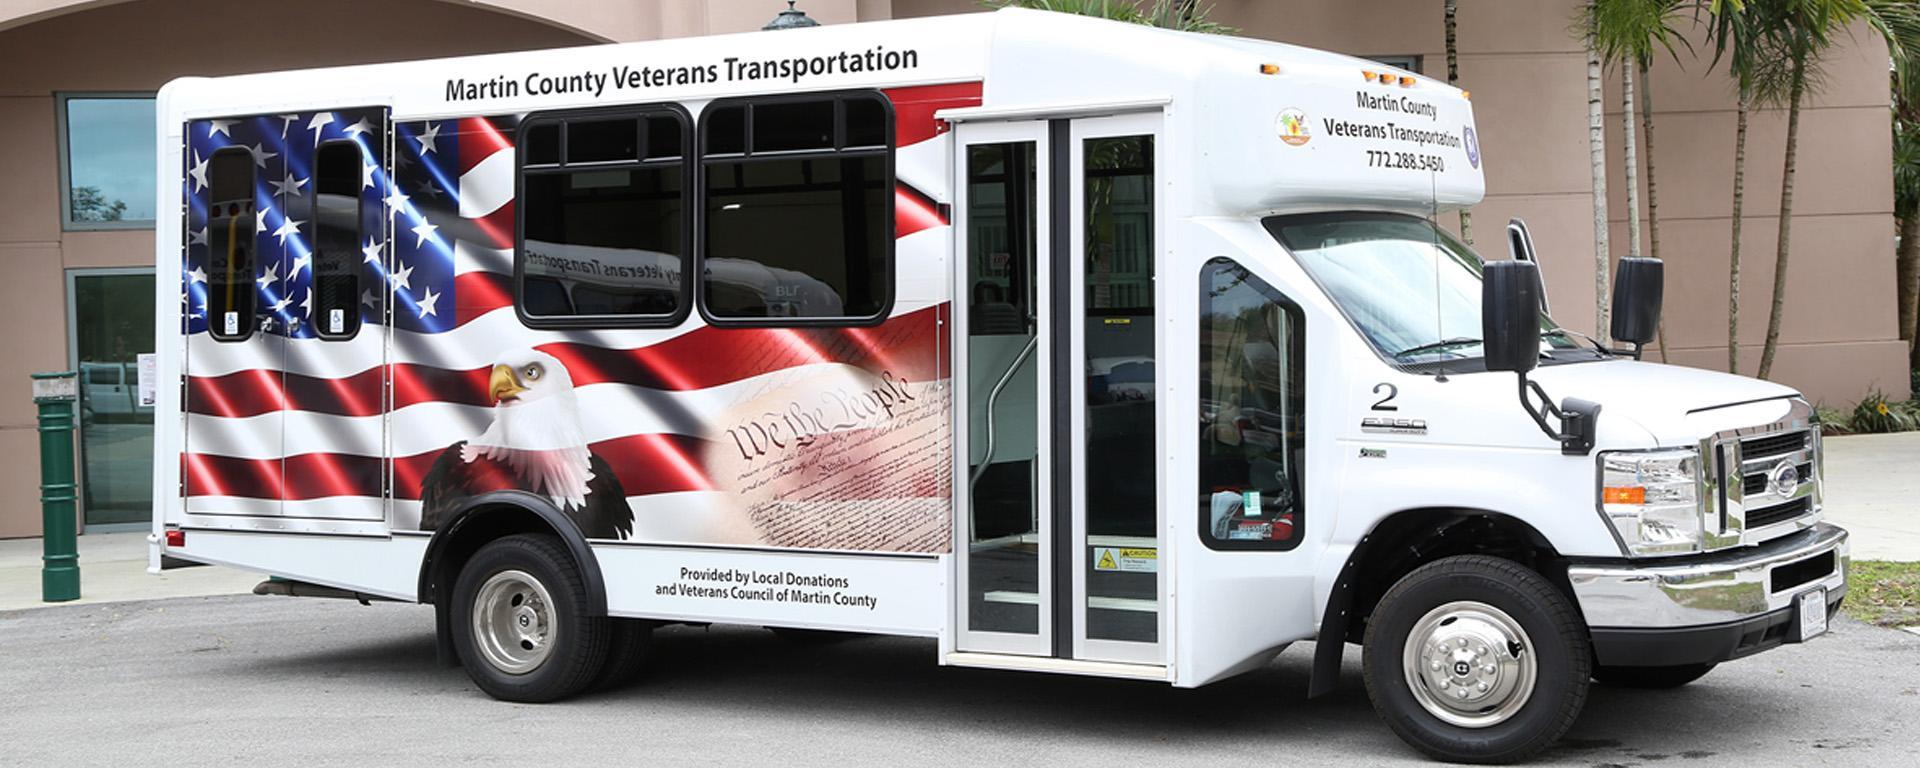 Veterans Transportation Van